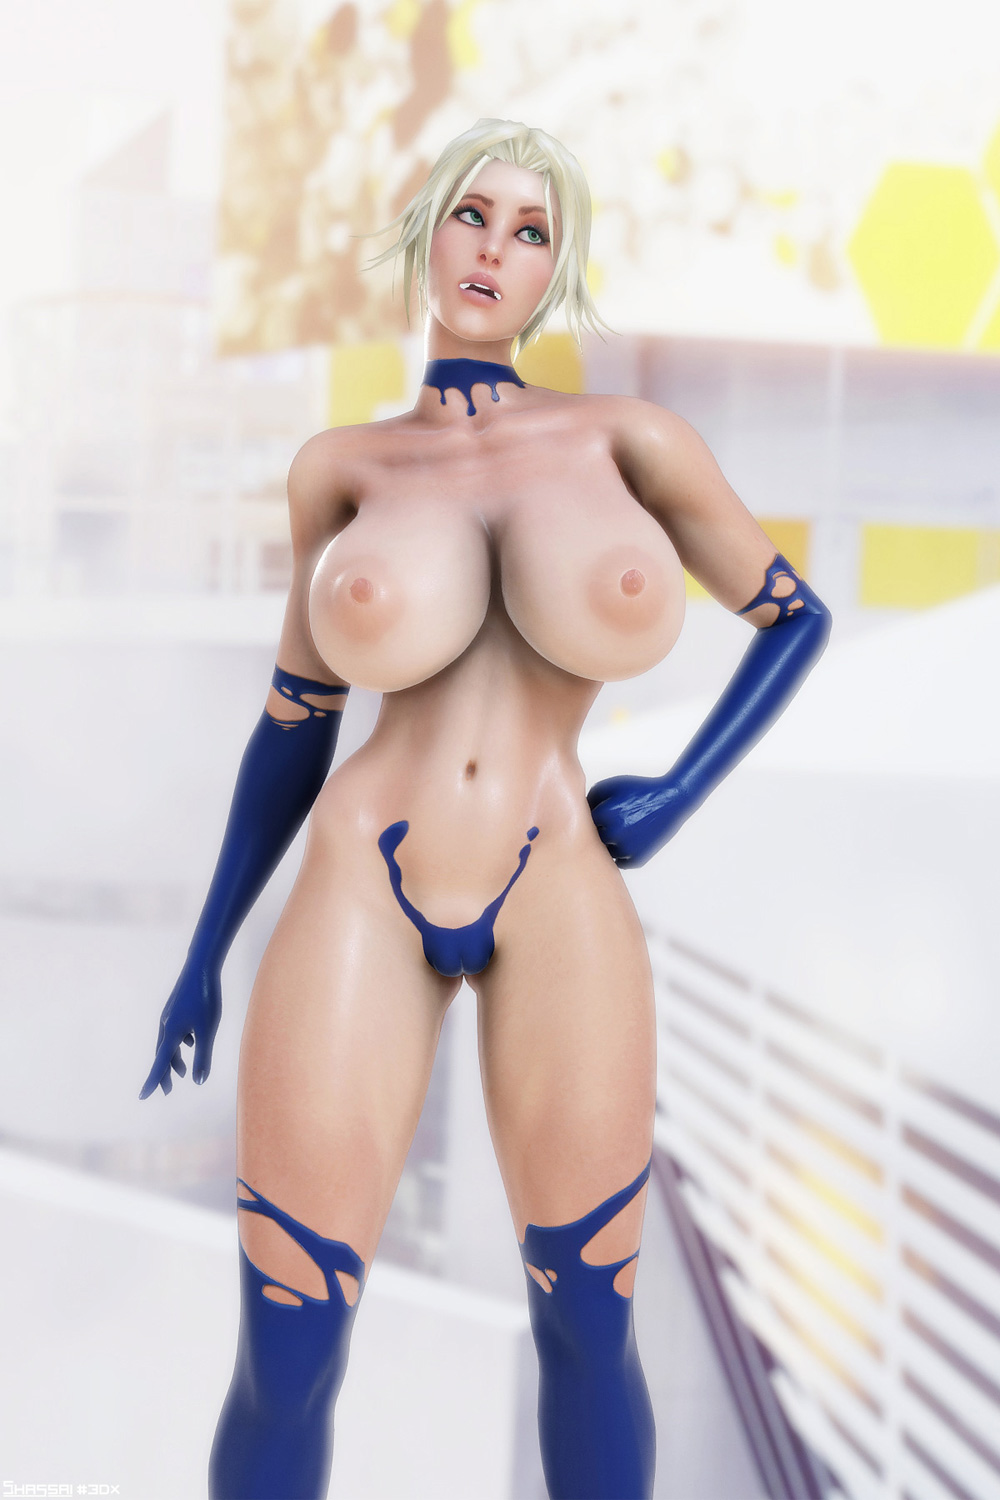 power girl claude marie bourbonnais Yup this is going in my cringe compilation